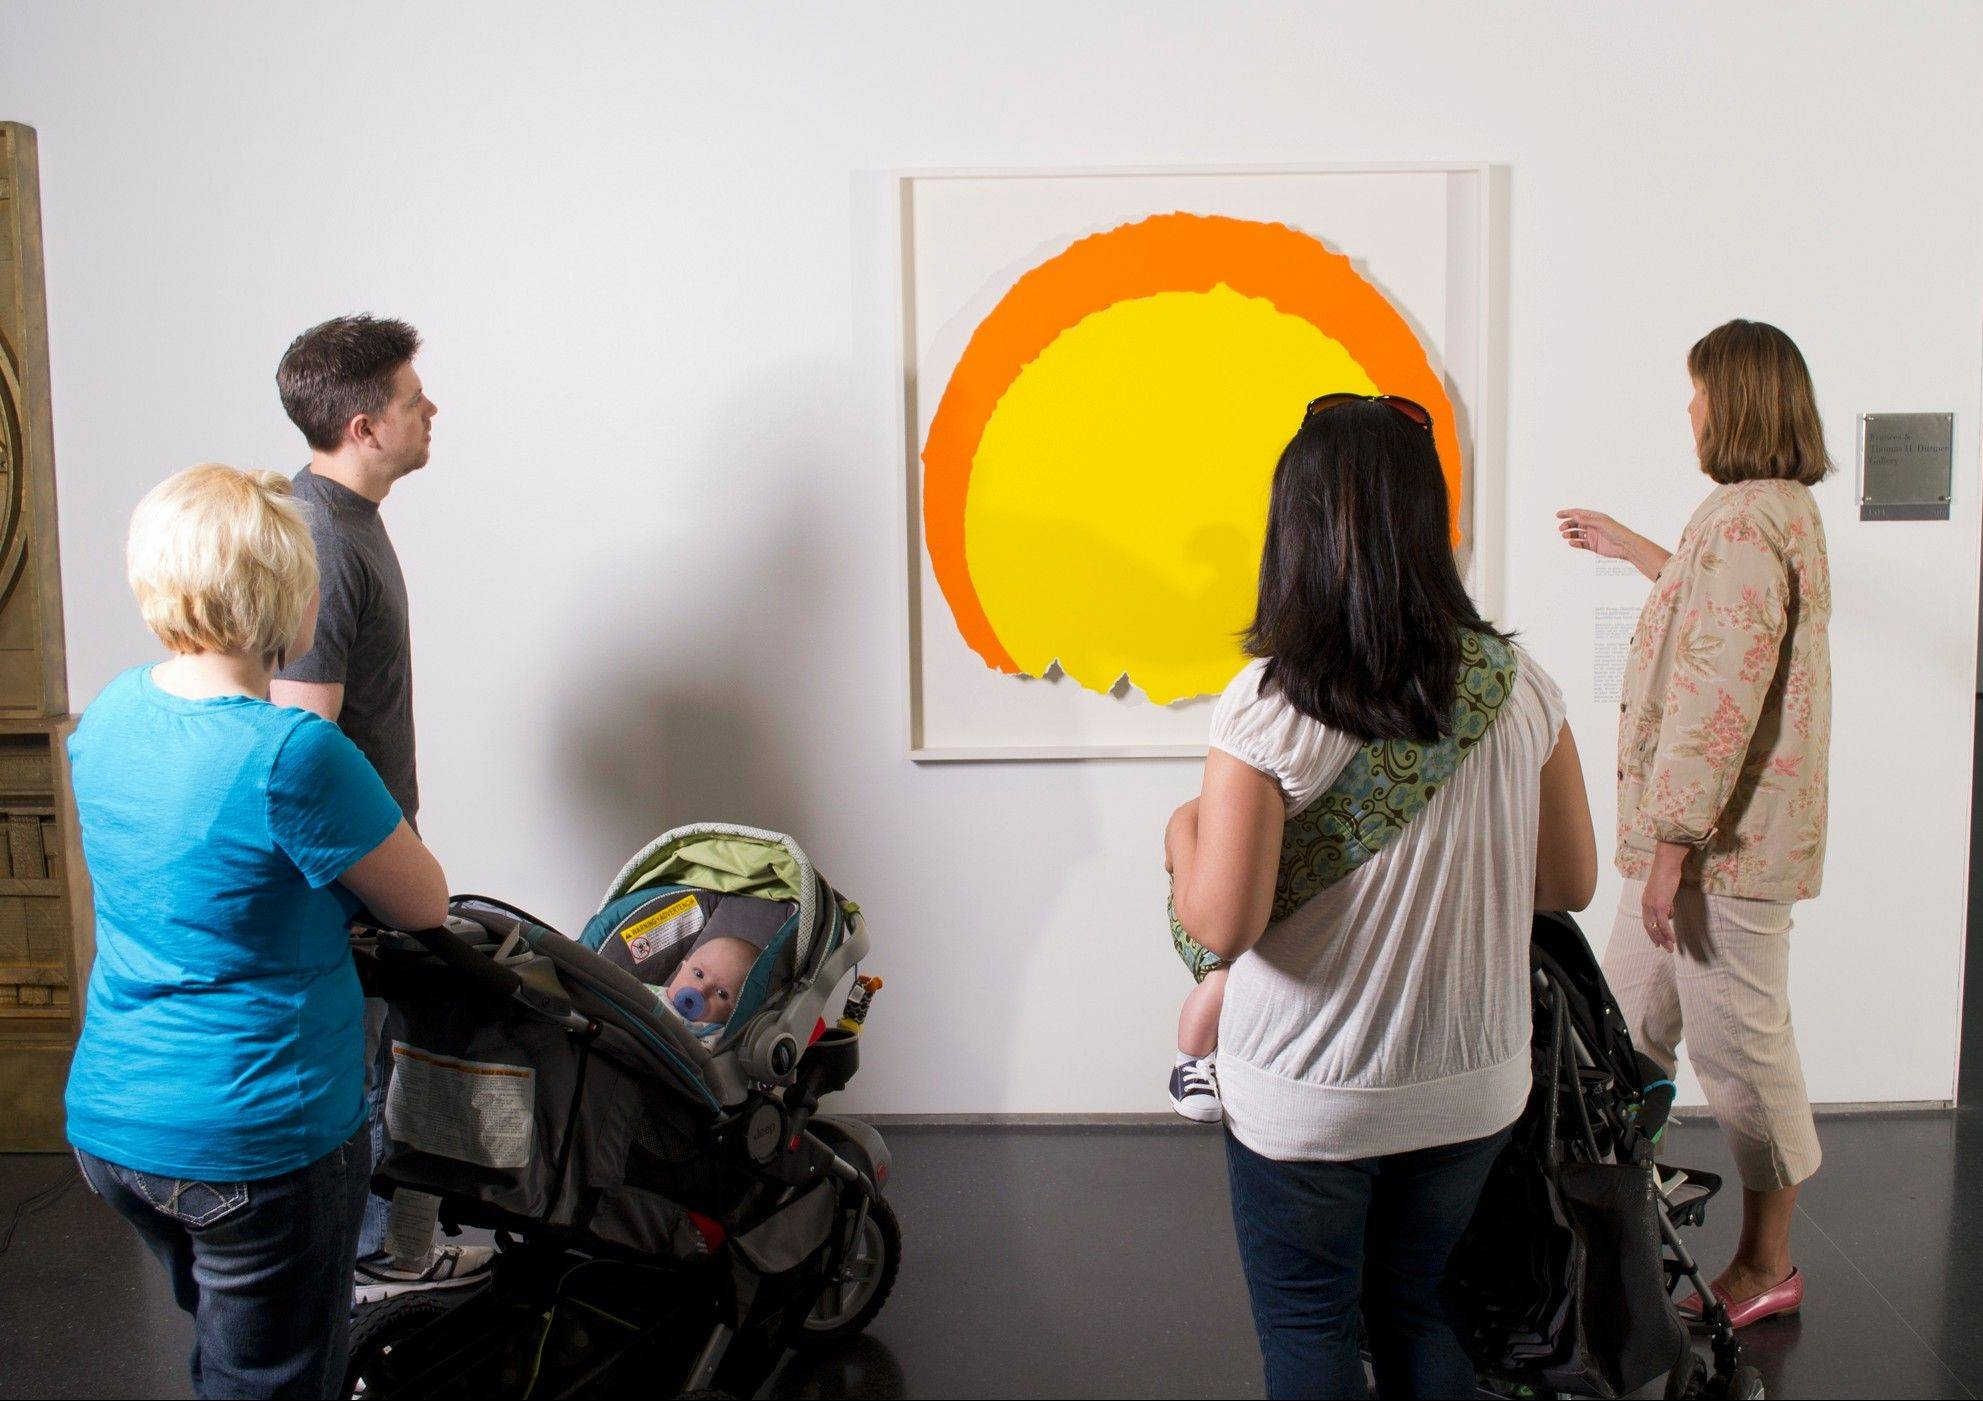 Take a Stroller Tour at the Museum of Contemporary Art Chicago to get out of the house and into some art on Wednesday, Feb. 5.